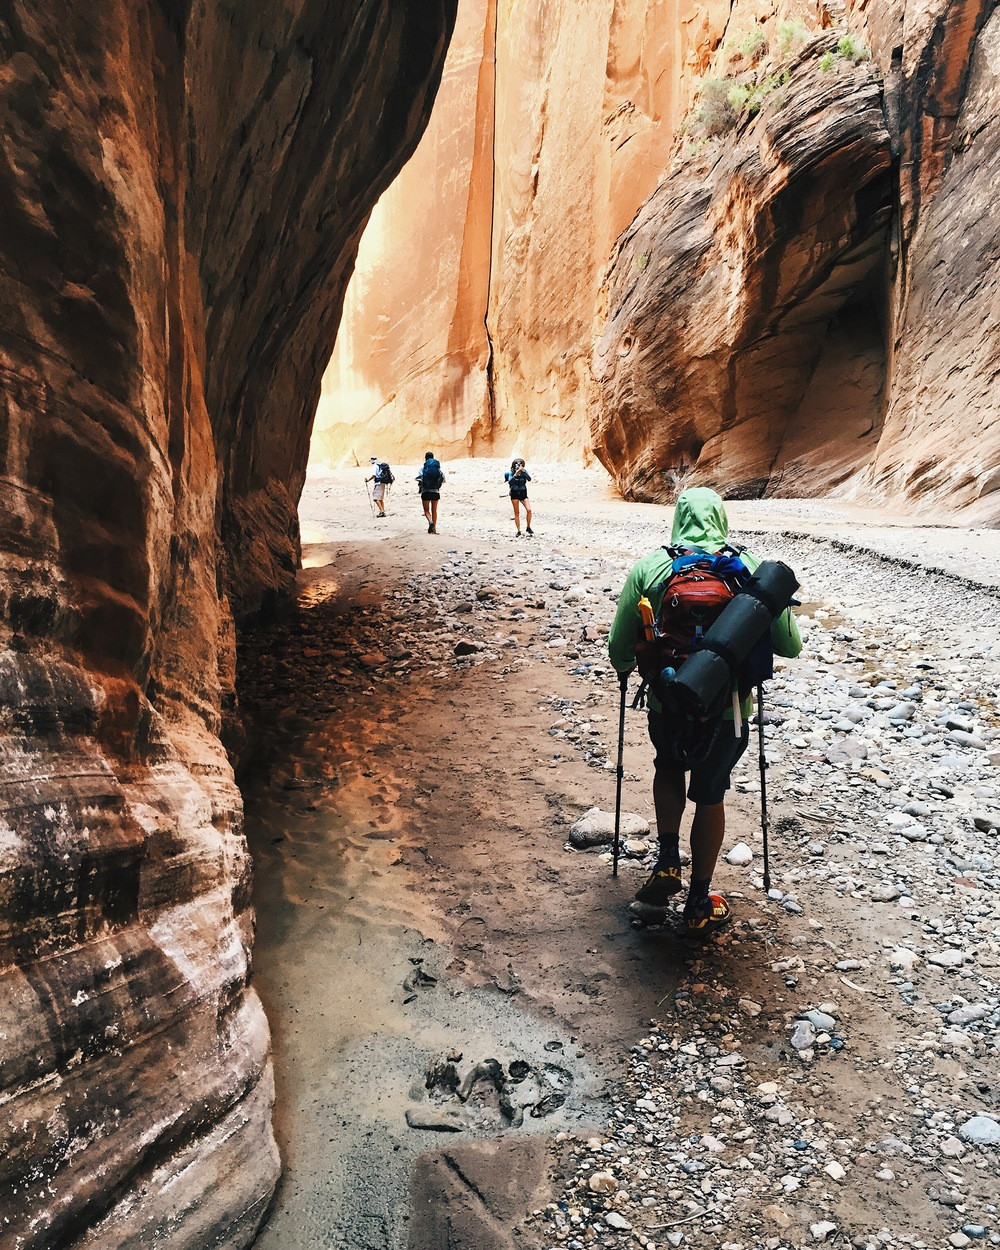 Hiking through the confluence just past Buckskin in Paria Canyon.